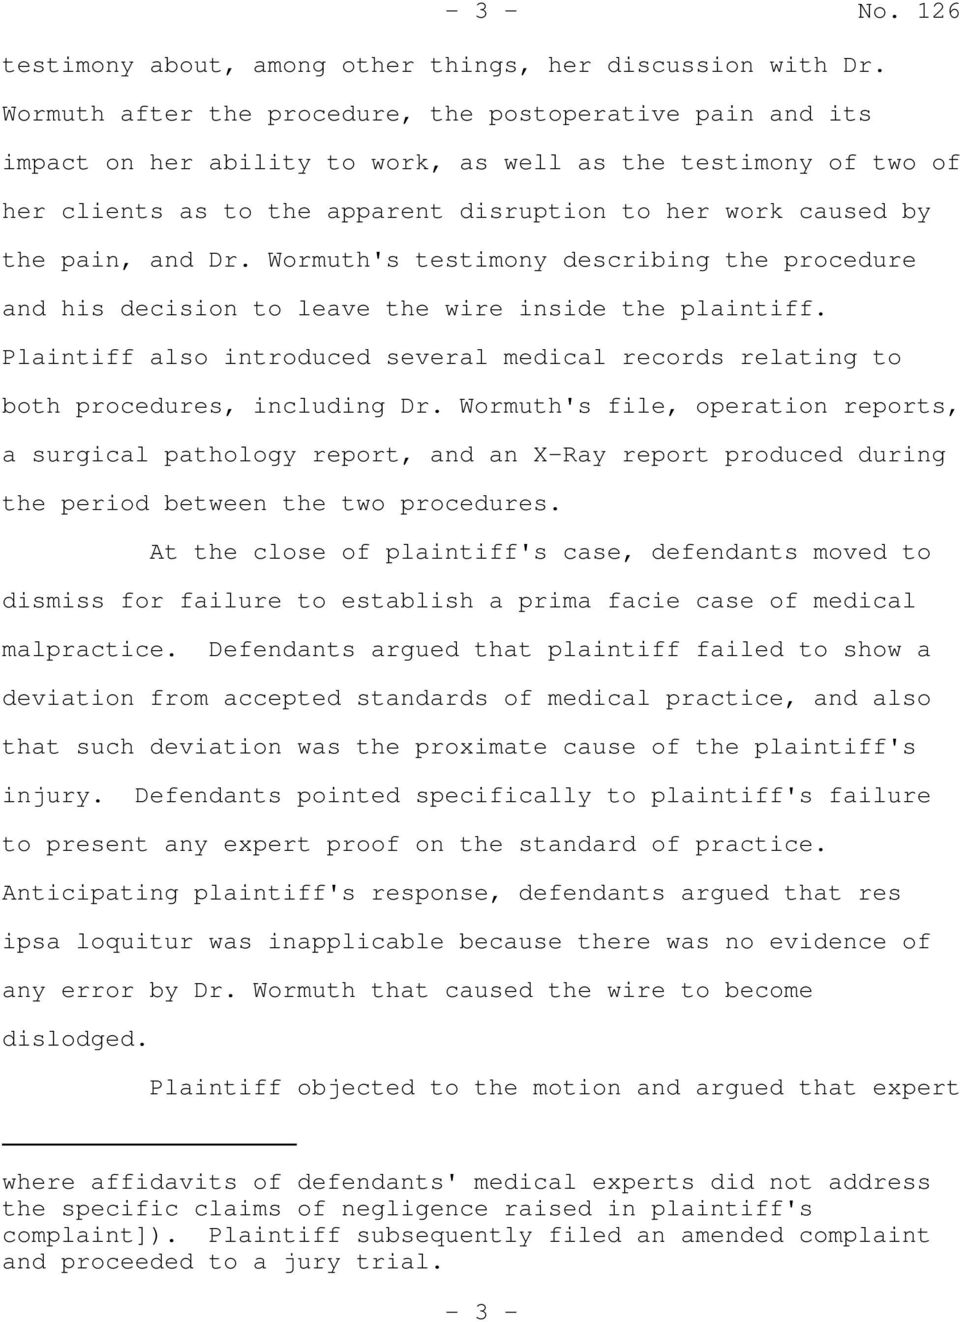 and Dr. Wormuth's testimony describing the procedure and his decision to leave the wire inside the plaintiff.